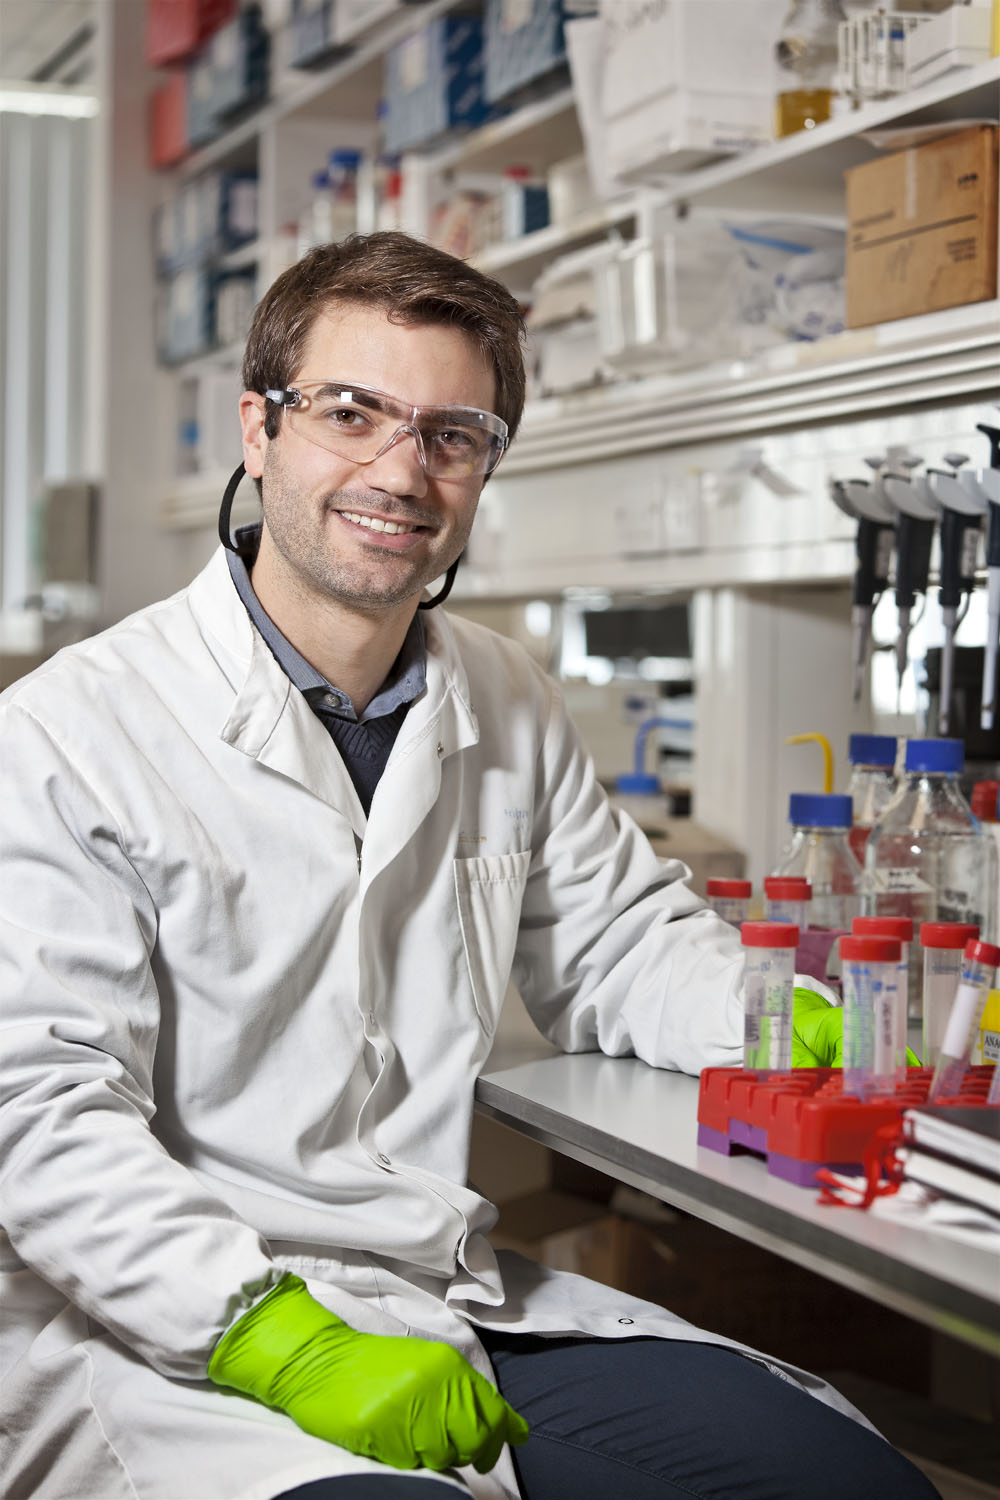 Ricardo in his lab at the John Radcliffe Hospital, Oxford